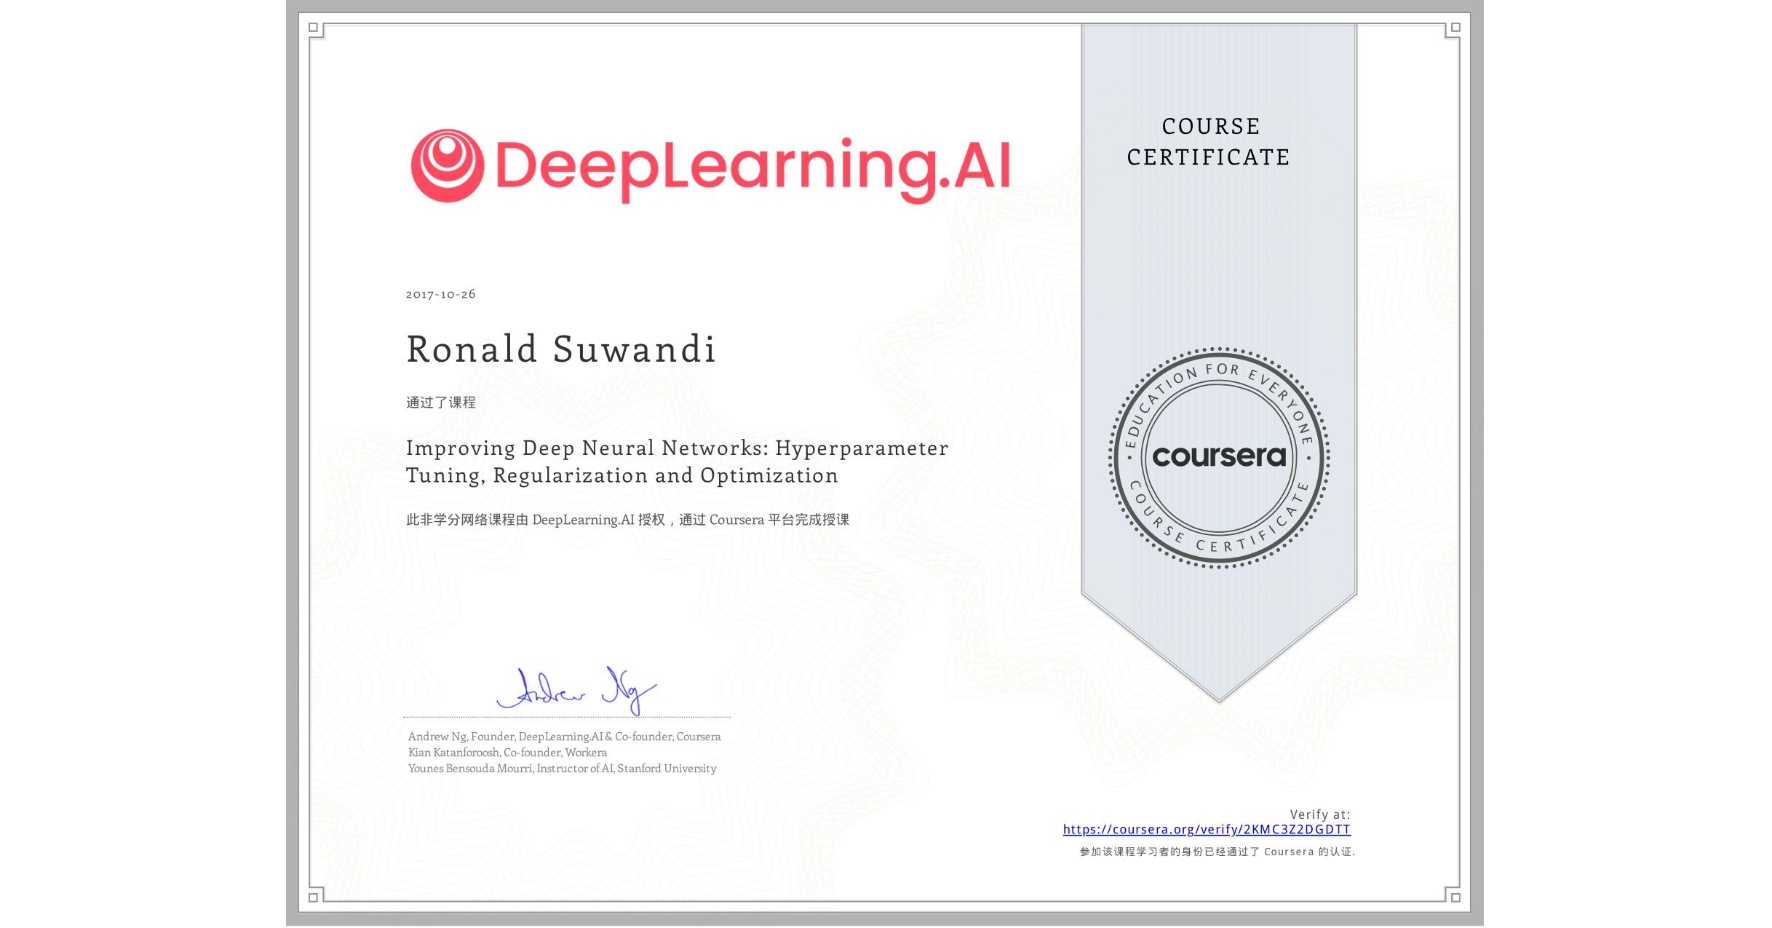 View certificate for Ronald Suwandi, Improving Deep Neural Networks: Hyperparameter Tuning, Regularization and Optimization, an online non-credit course authorized by DeepLearning.AI and offered through Coursera